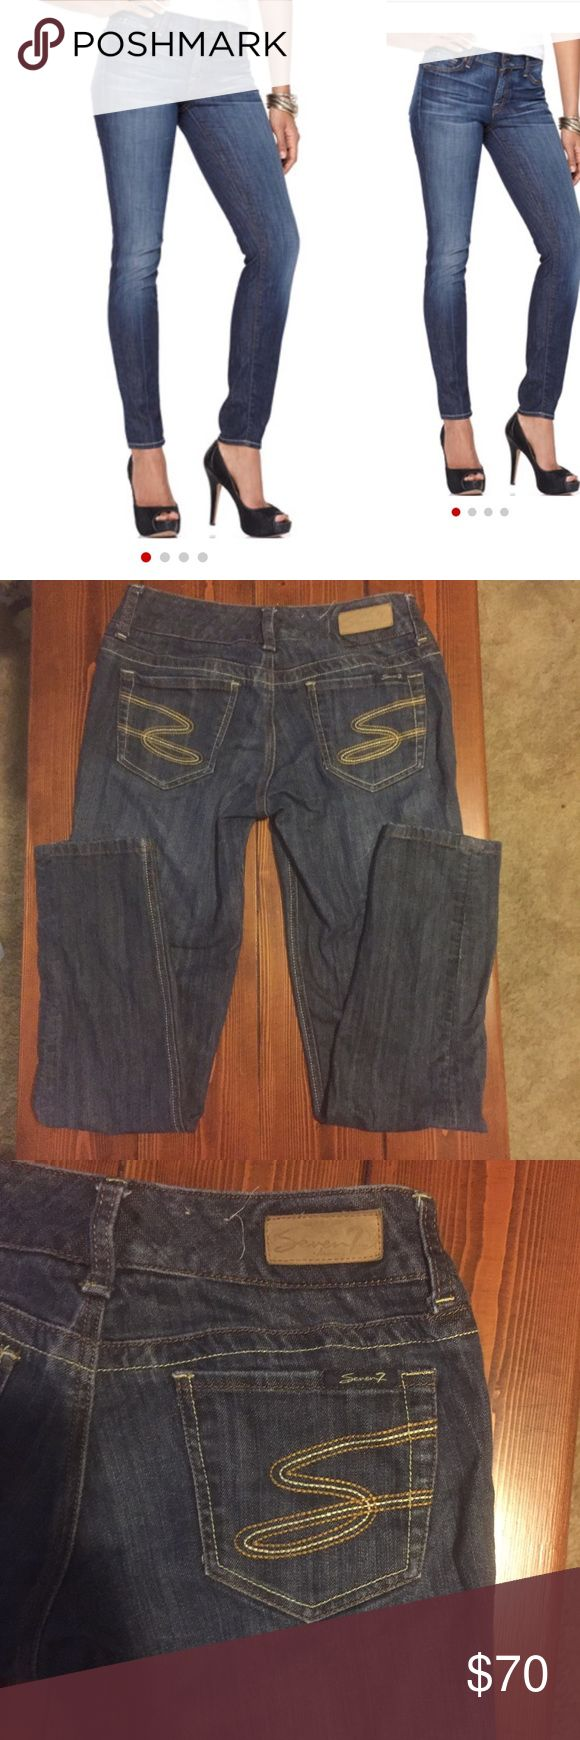 EUC Seven jeans, the skinny fit. Size 27 Seven For All Mankind jeans. The Skinny fit. Excellent condition. Size 27, inseam: 29 inches, rise: 7 1/2 inches. Medium to dark wash with two-tone stitching and two-tone S on the pockets. Seven7 Jeans Skinny